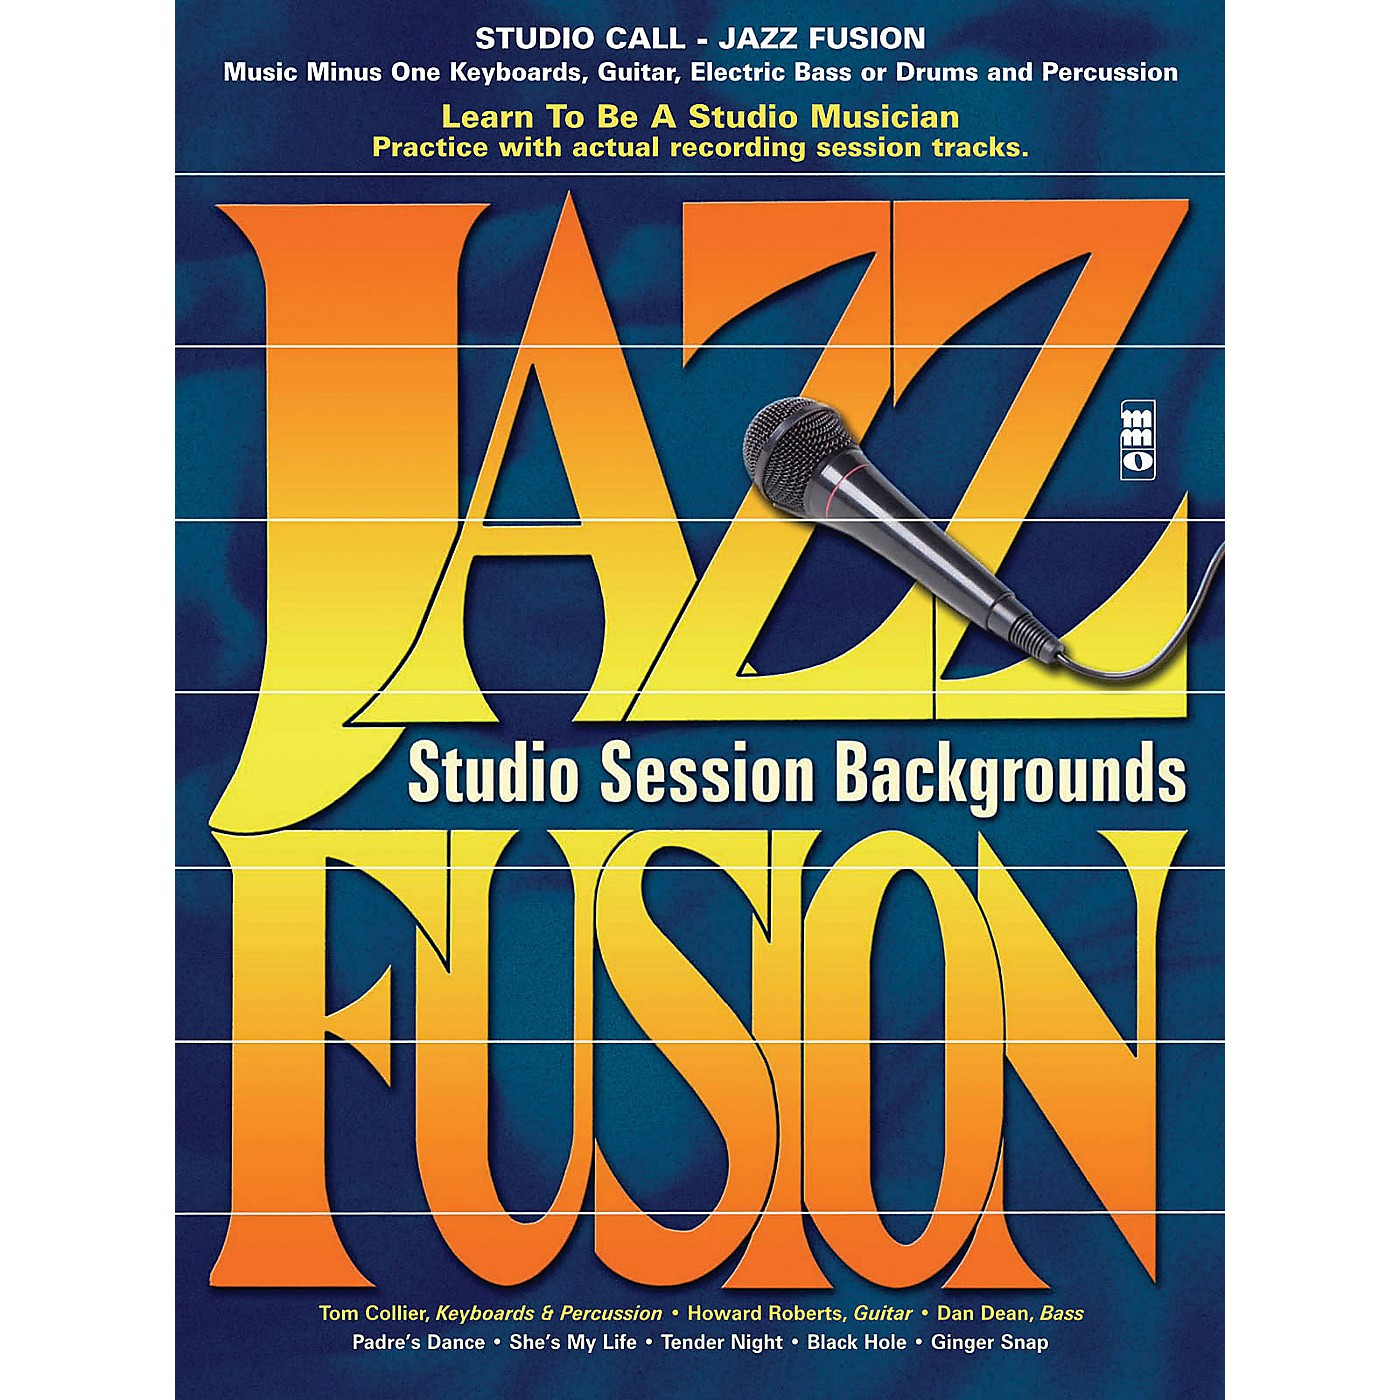 Music Minus One Studio Call: Jazz/Fusion - Piano (Learn to Be a Studio Musician) Music Minus One Series Softcover with CD thumbnail